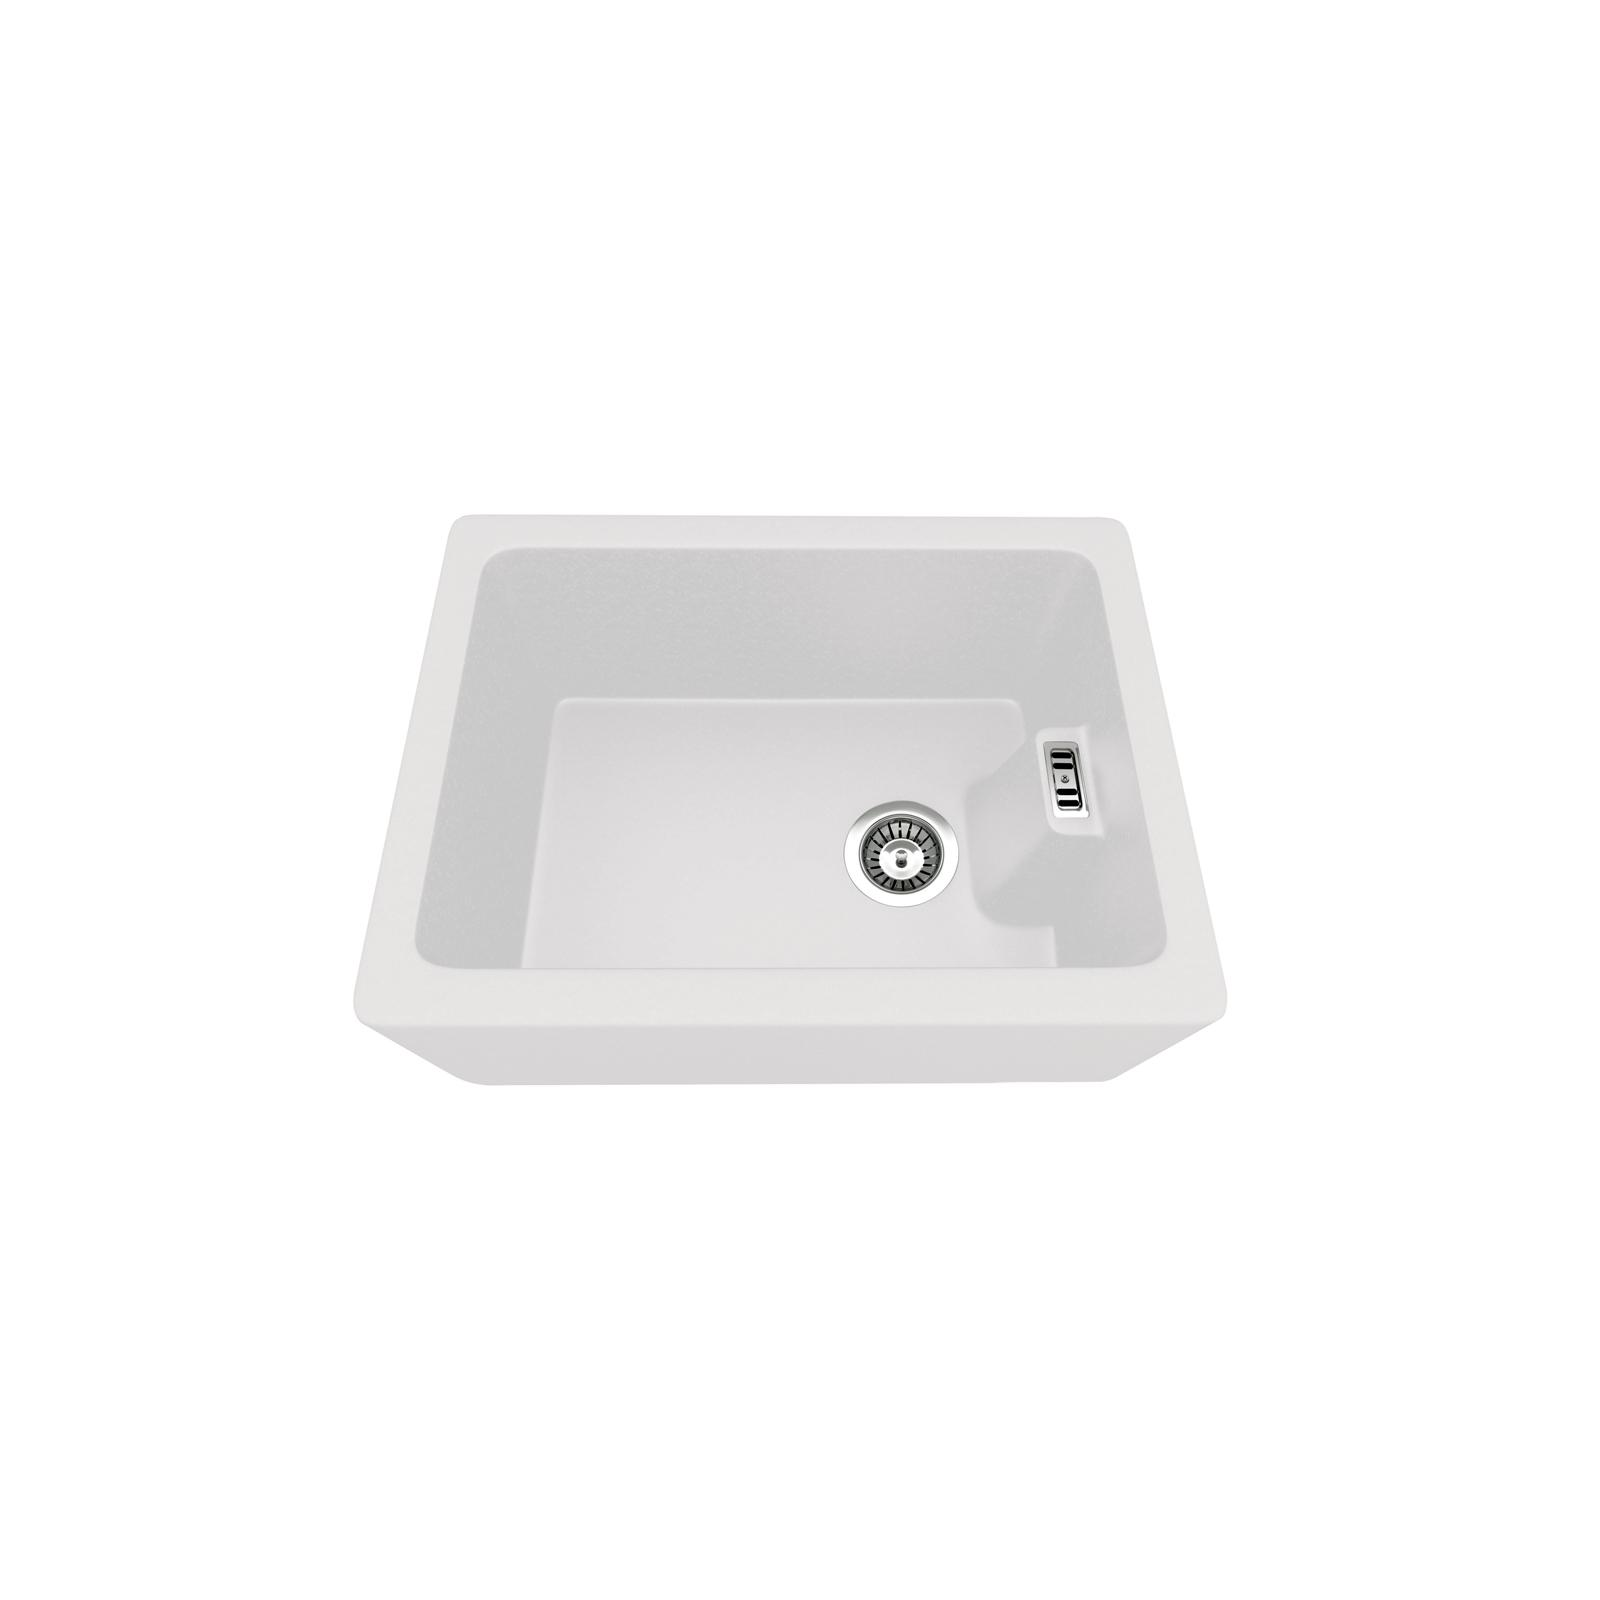 High-quality sink Clovis granit white - one bowl